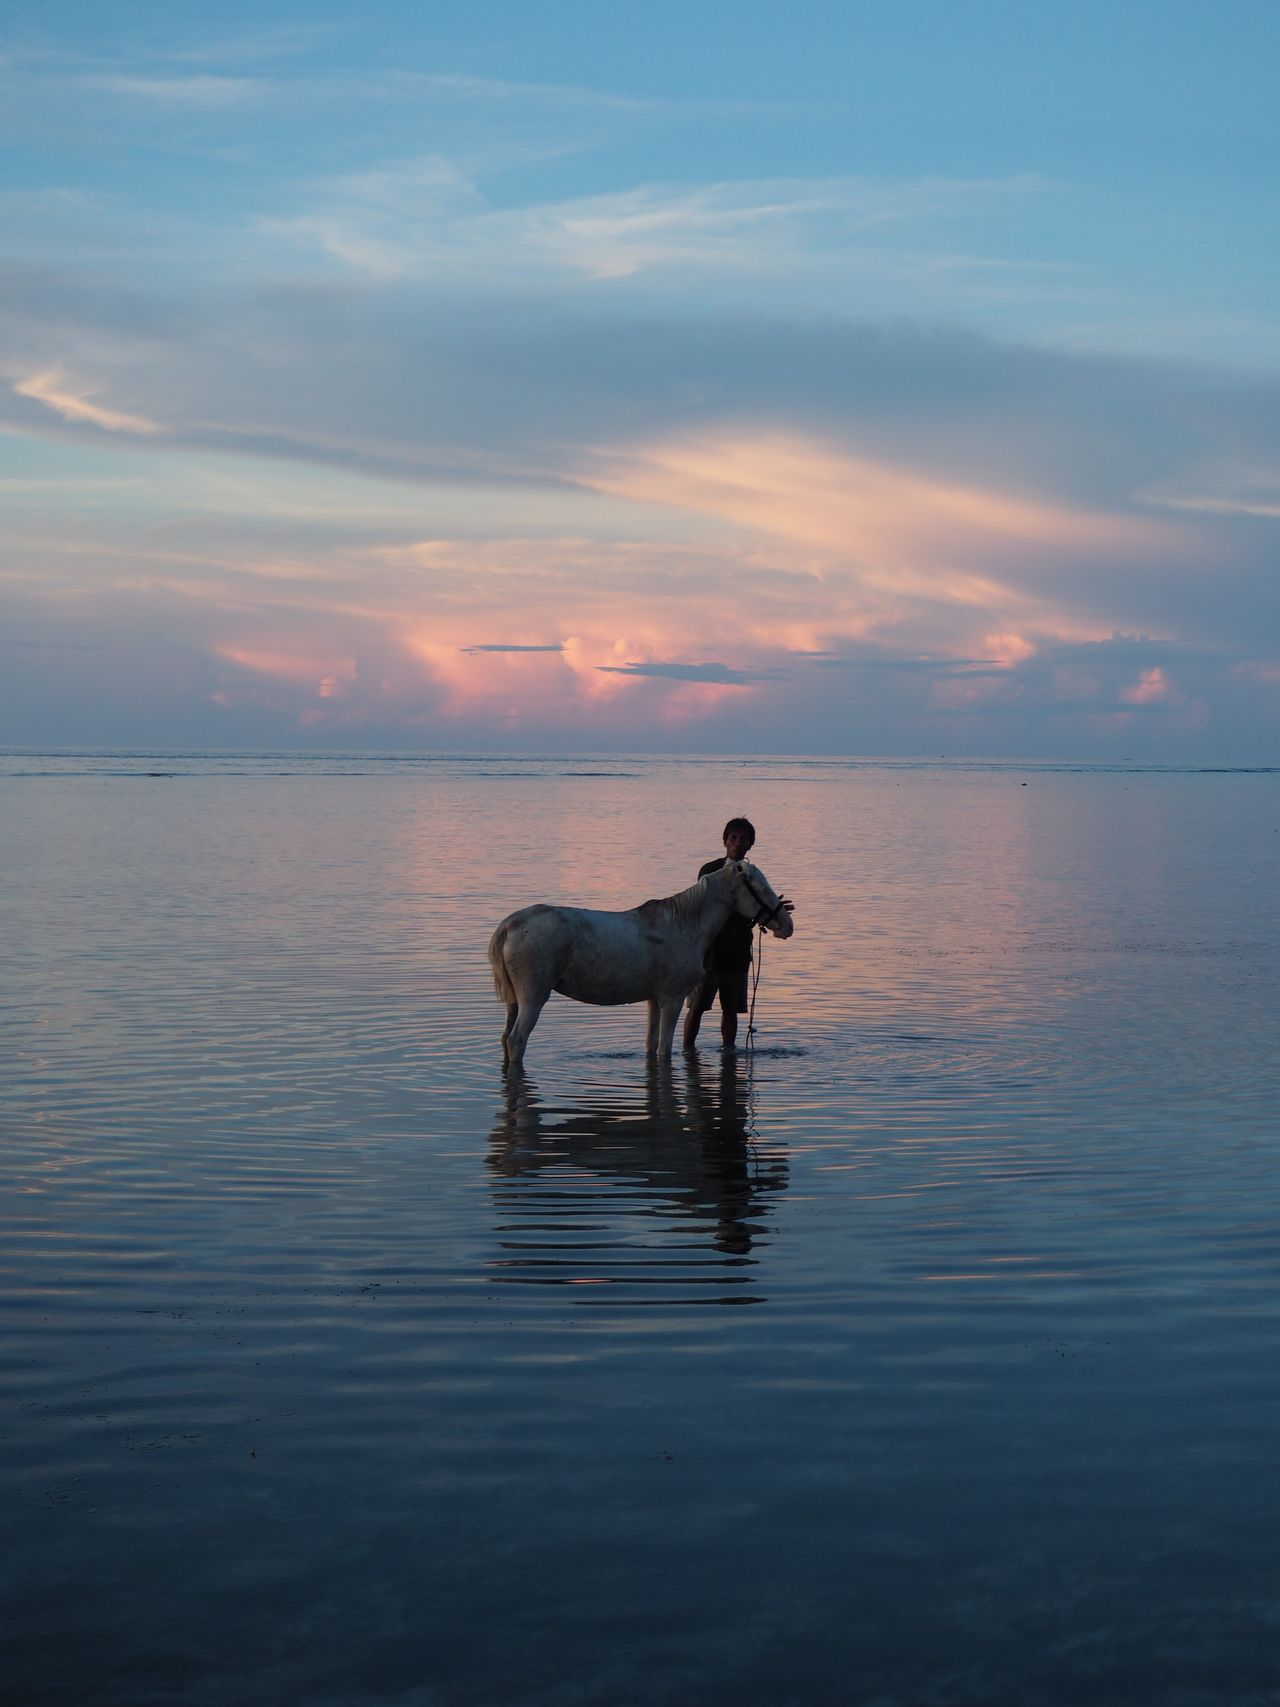 Animal Beauty In Nature Cloud - Sky Horizon Over Water Horse Horse Bathing Idyllic Mammal Nature Ocean Scenics Sunset Tranquil Scene Tranquility Water